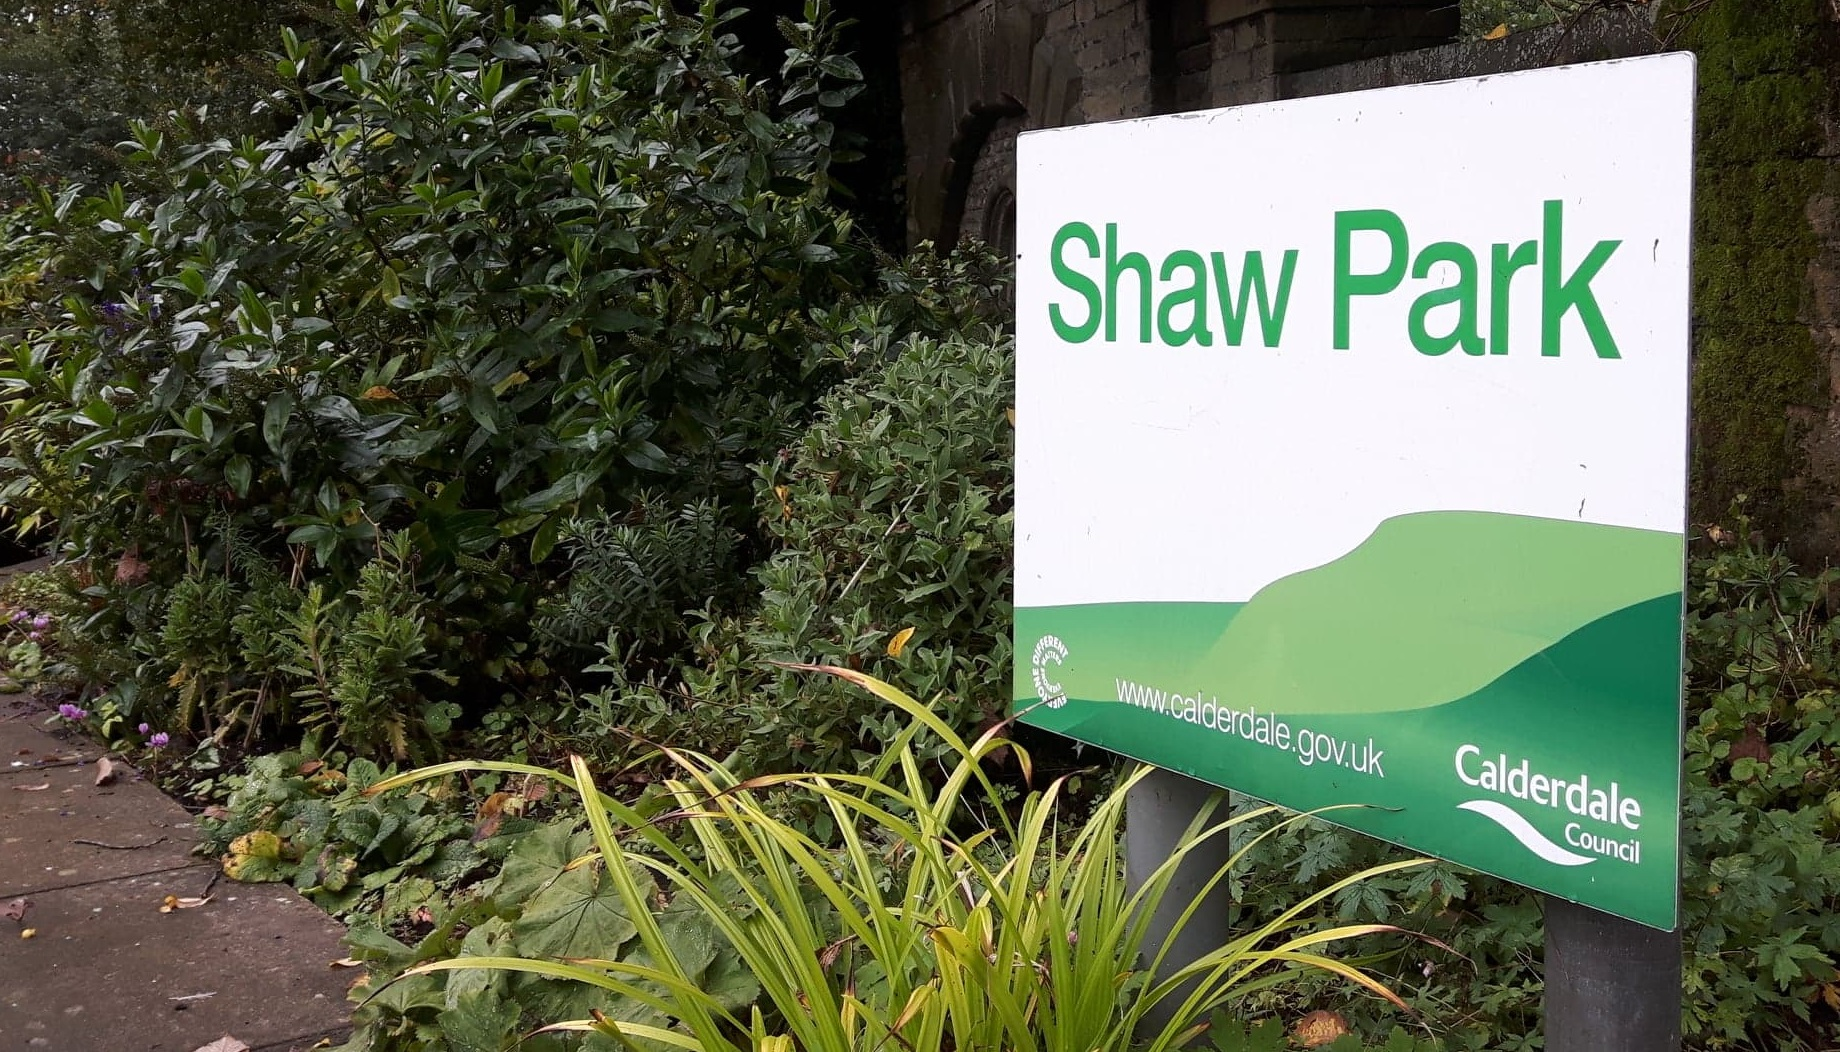 Employees set to dig deep for Shaw Park